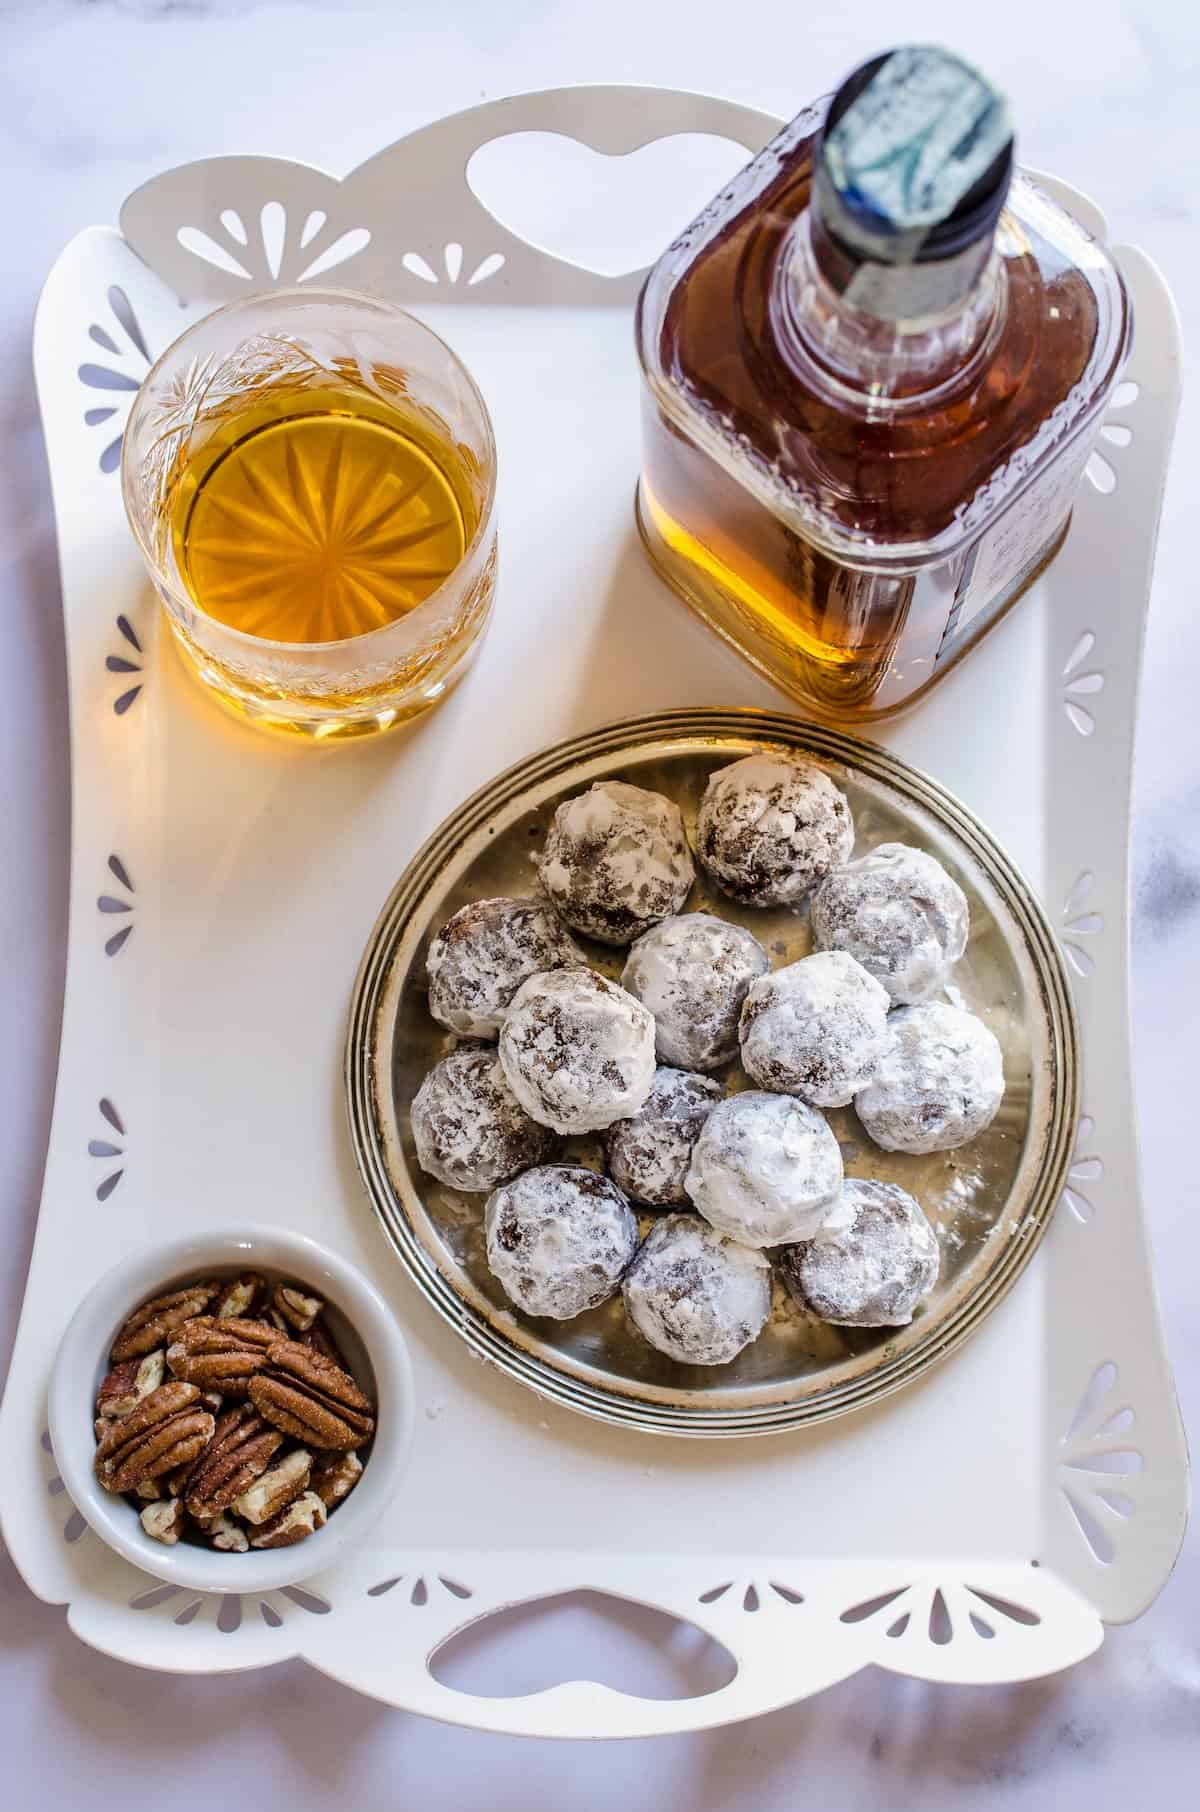 A plate of bourbon balls next to a glass and bottle of bourbon